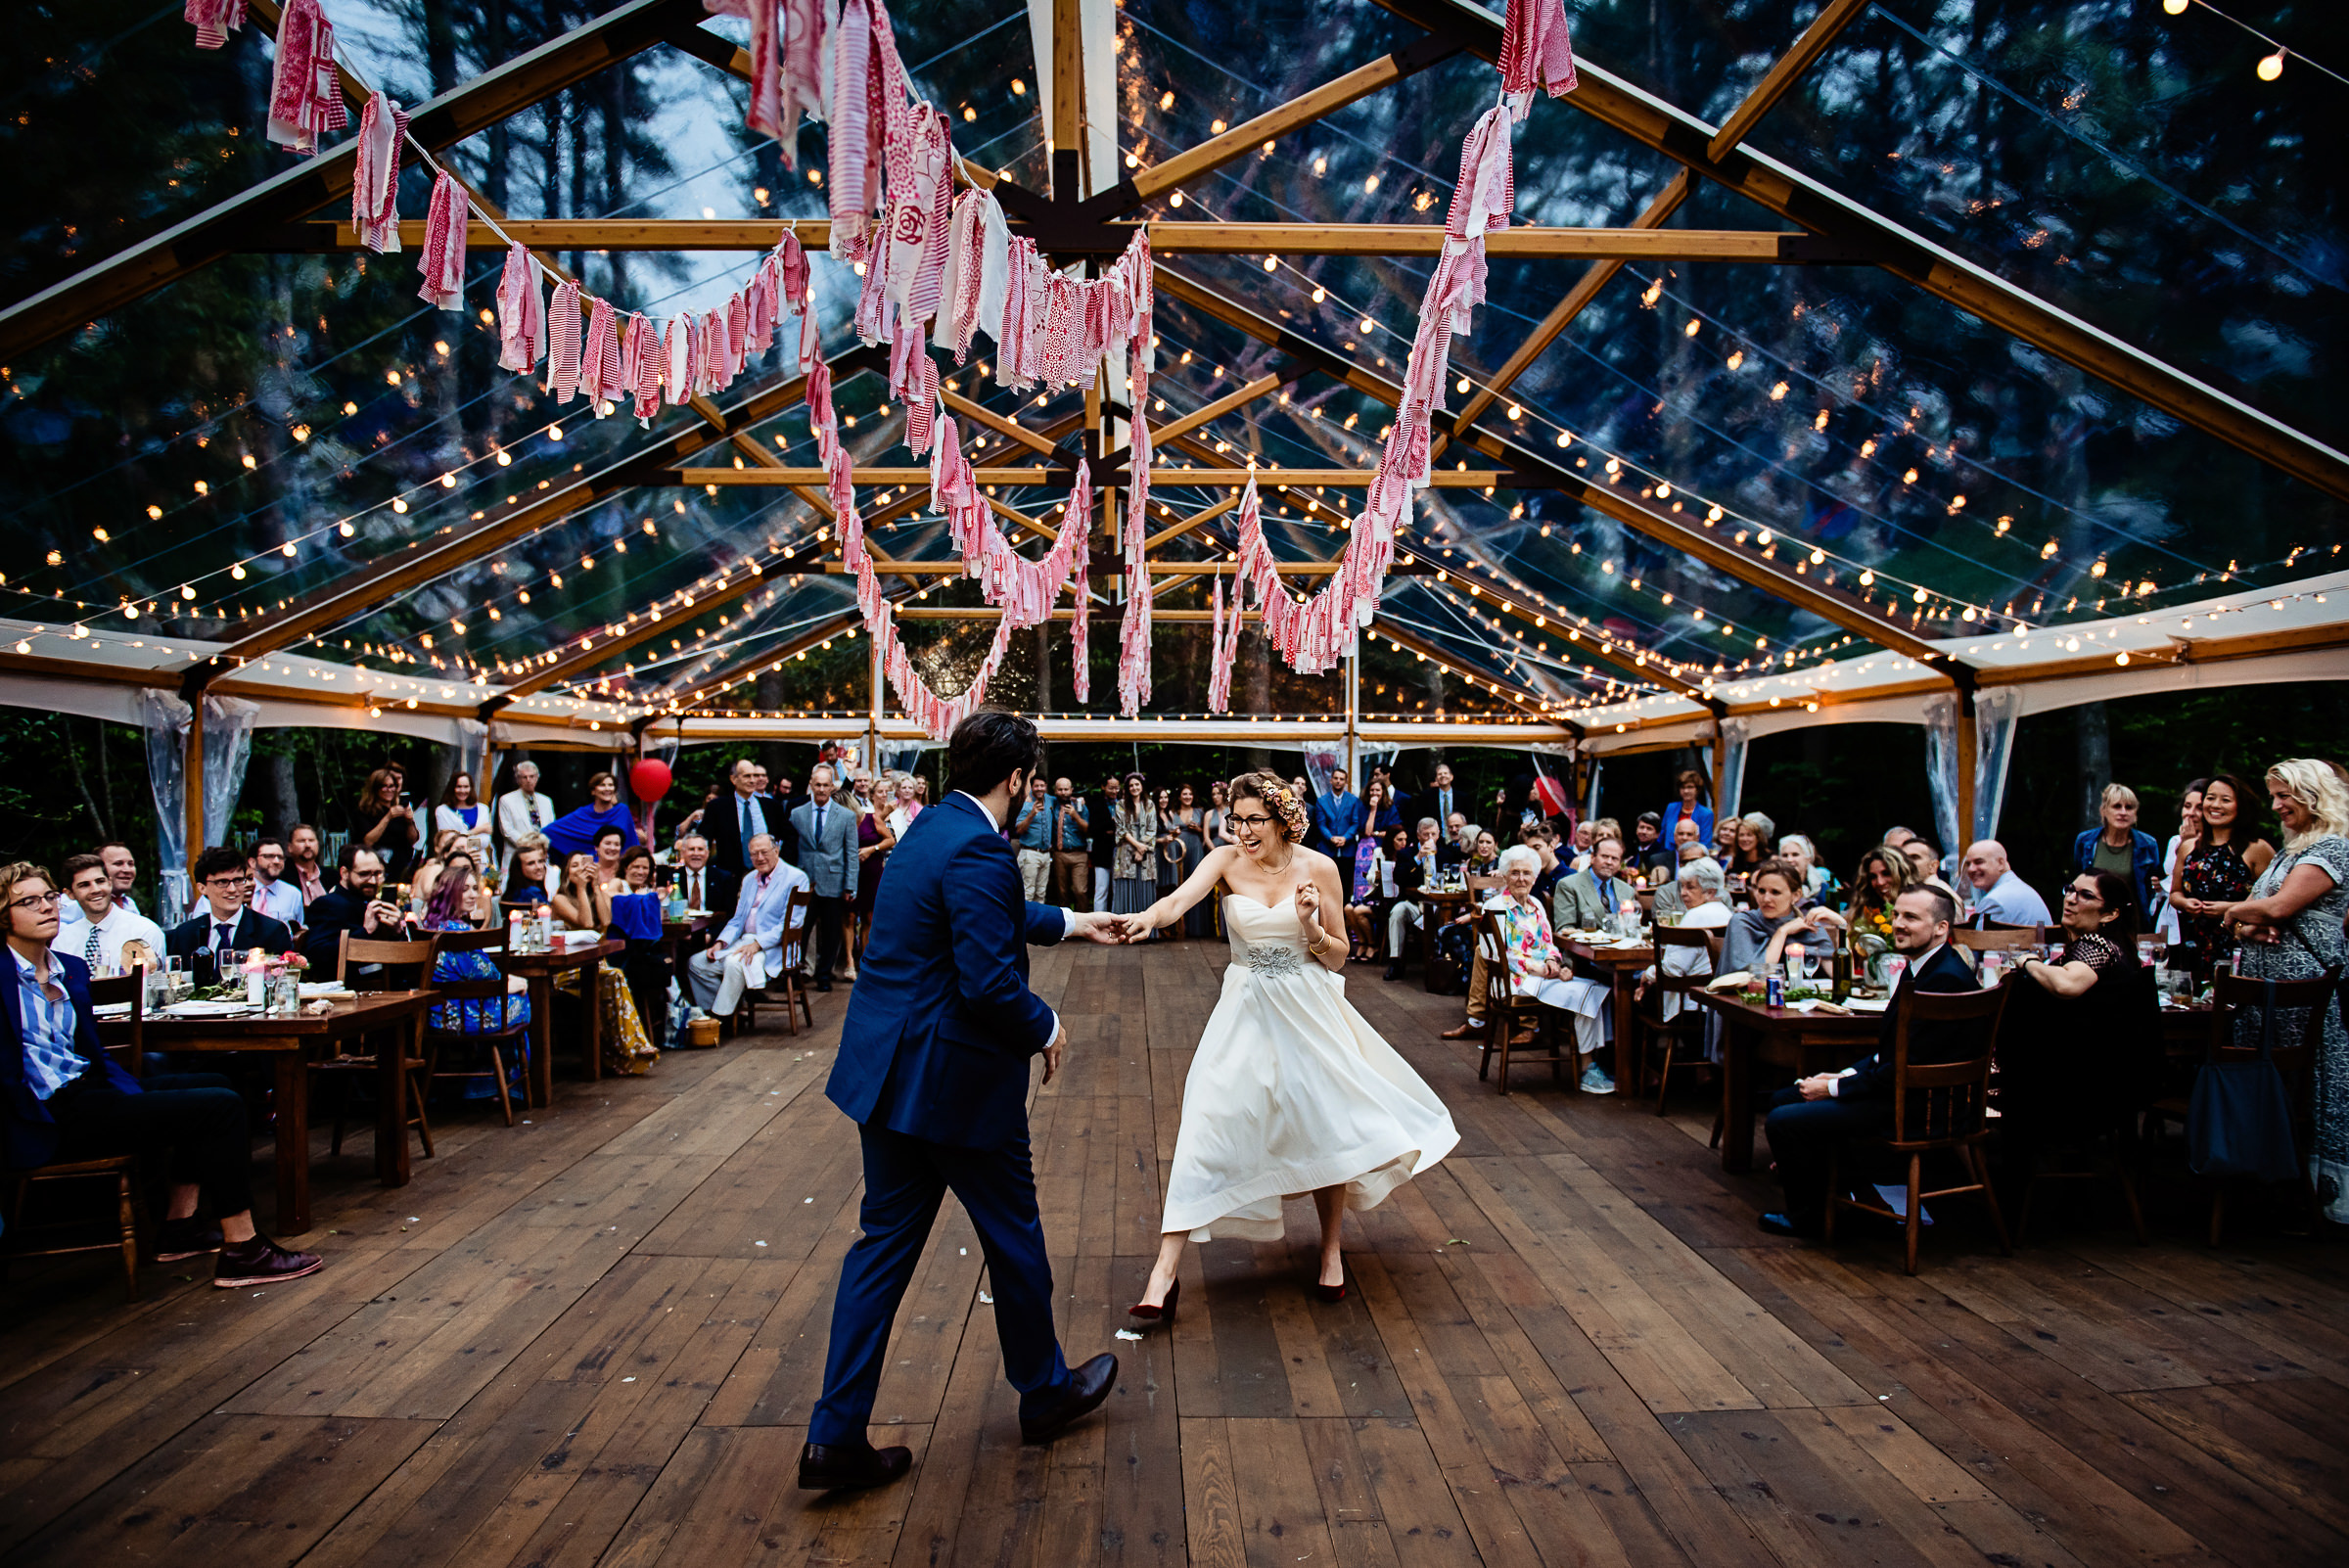 bride and grooms first dance under a glass tent among the stars - photo by Hannah Photography